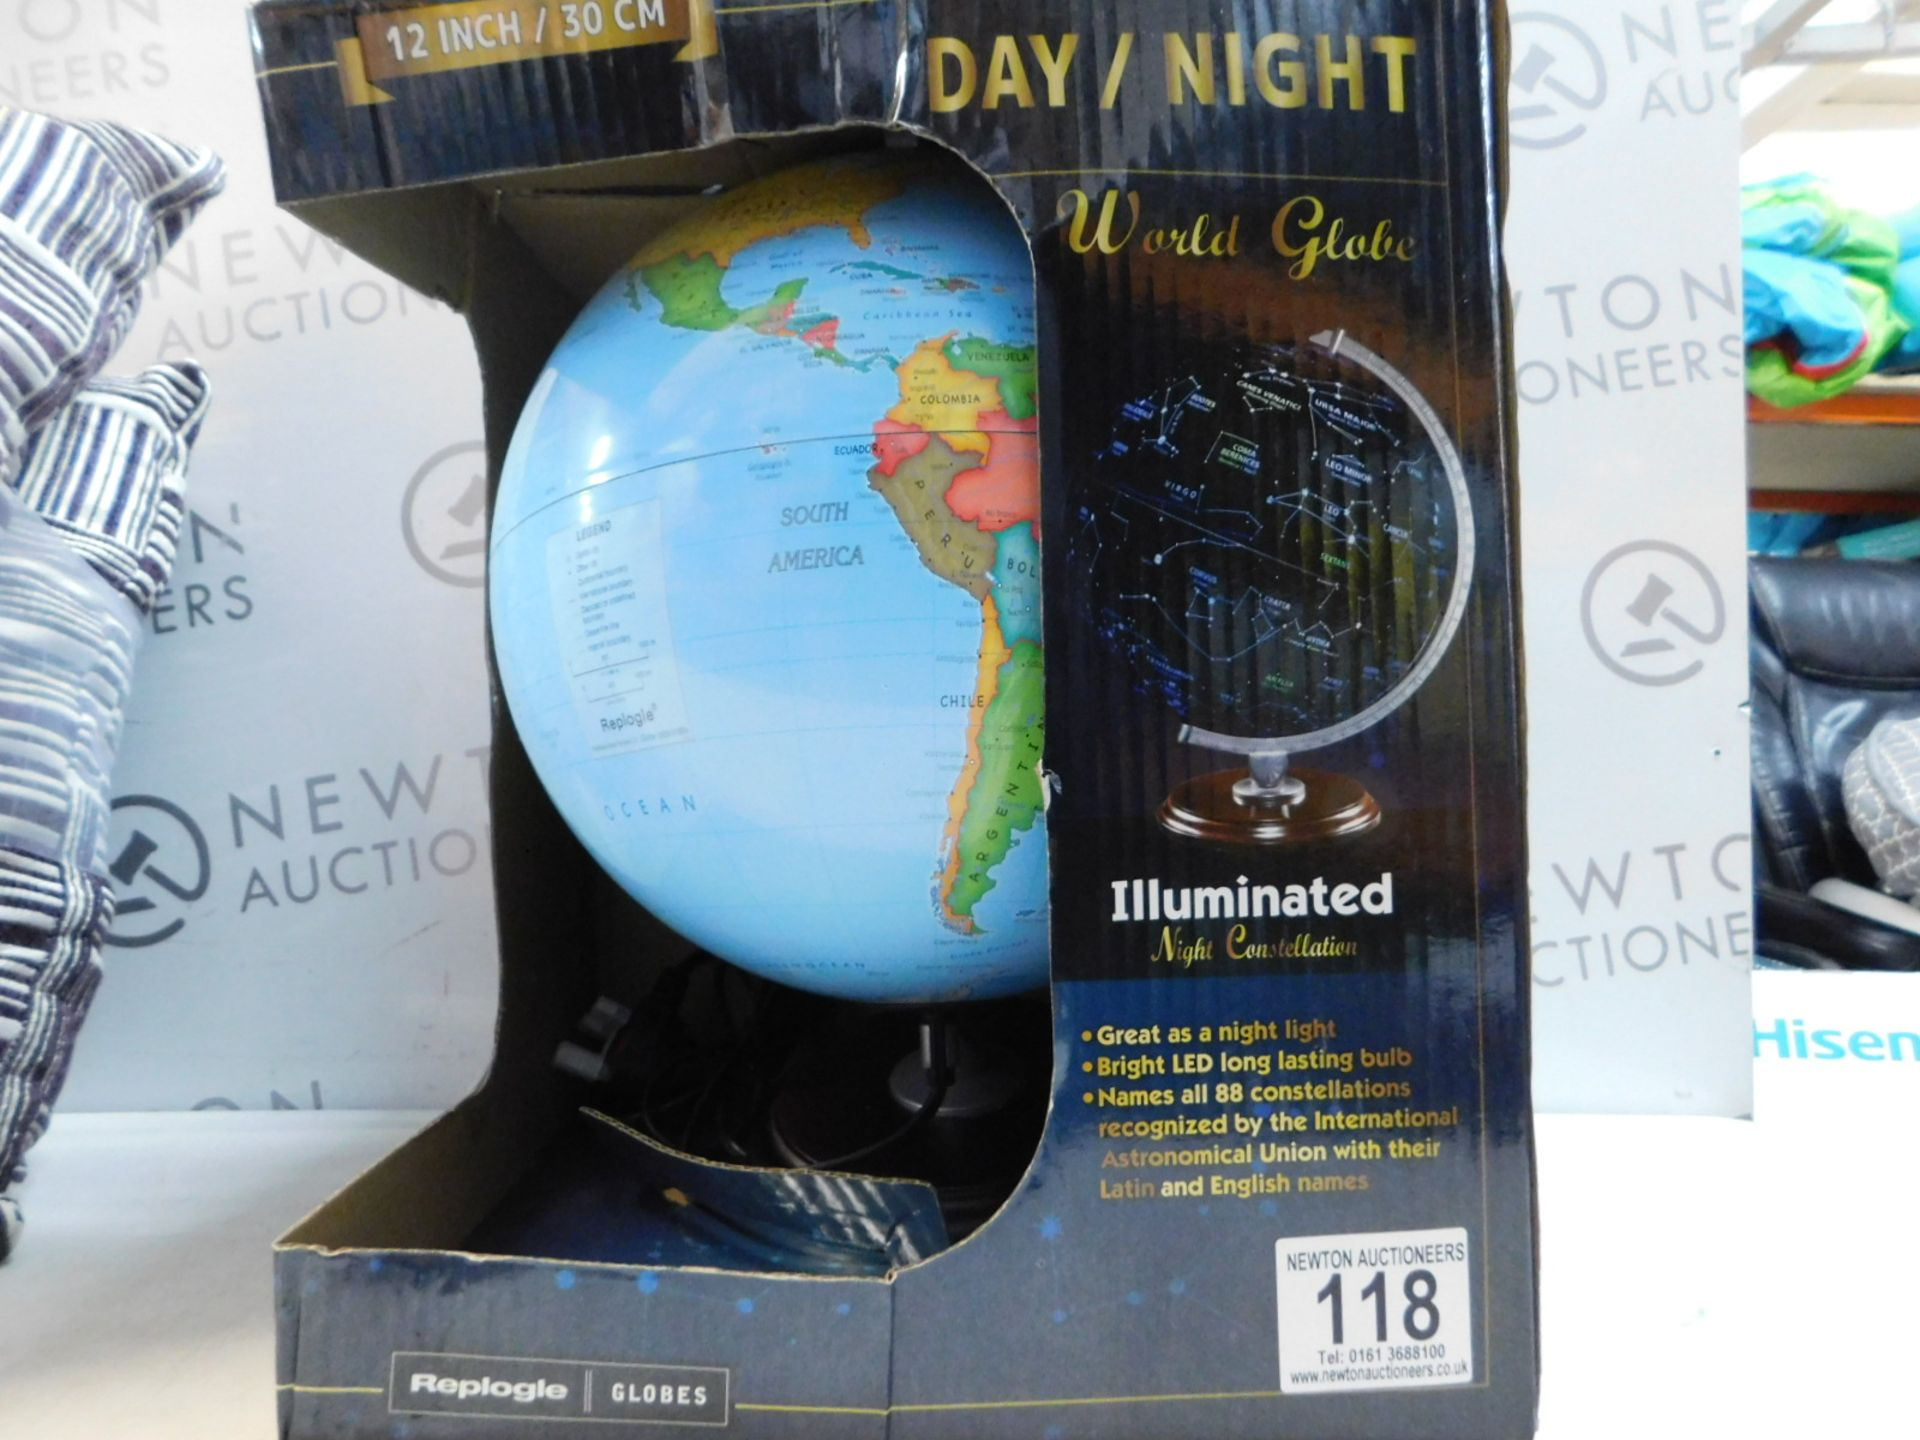 """Lot 118 - 1 BOXED REPLOGLE 12"""" (30CM) DAY/ NIGHT WORLD GLOBE WITH WOODEN BASE RRP £49.99"""